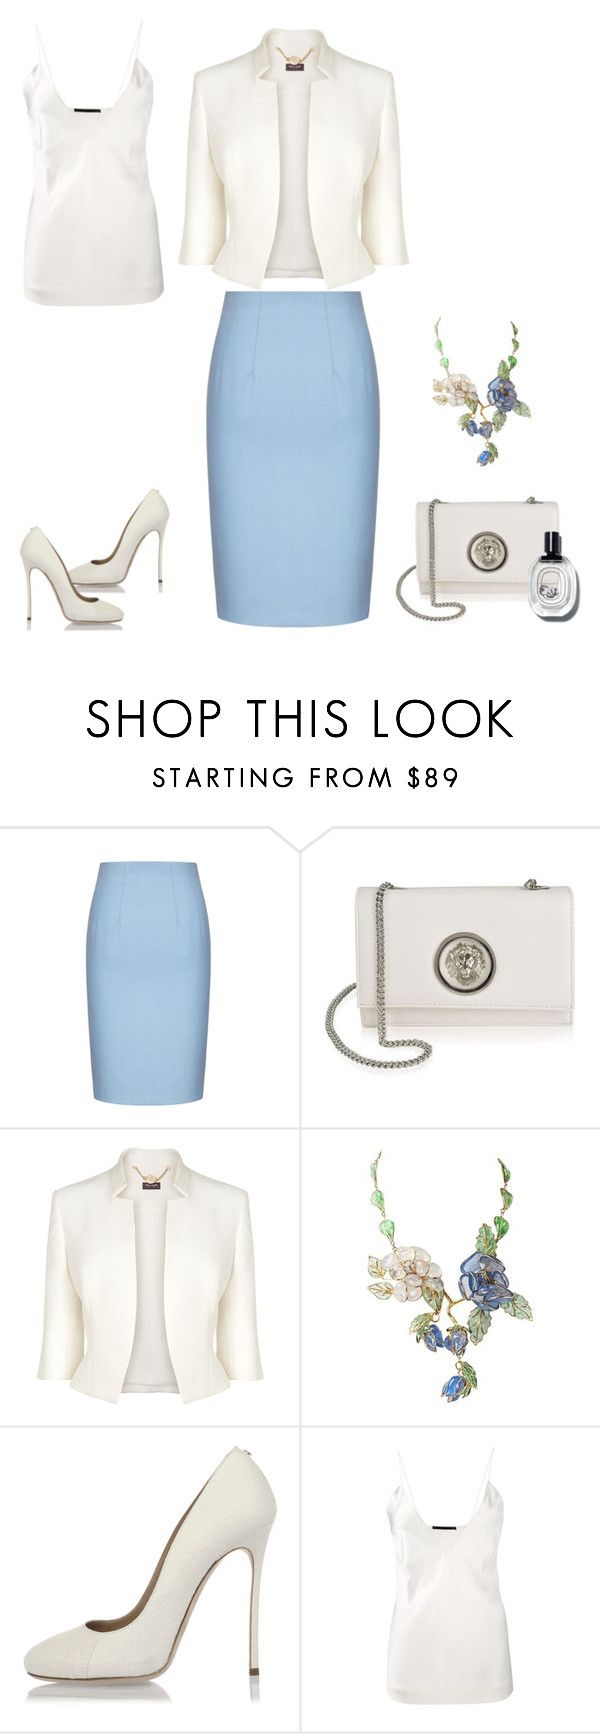 """For winning a group"" by indiamonds ❤ liked on Polyvore featuring Versus, Phase Eight, Dsquared2 and Haider Ackermann"